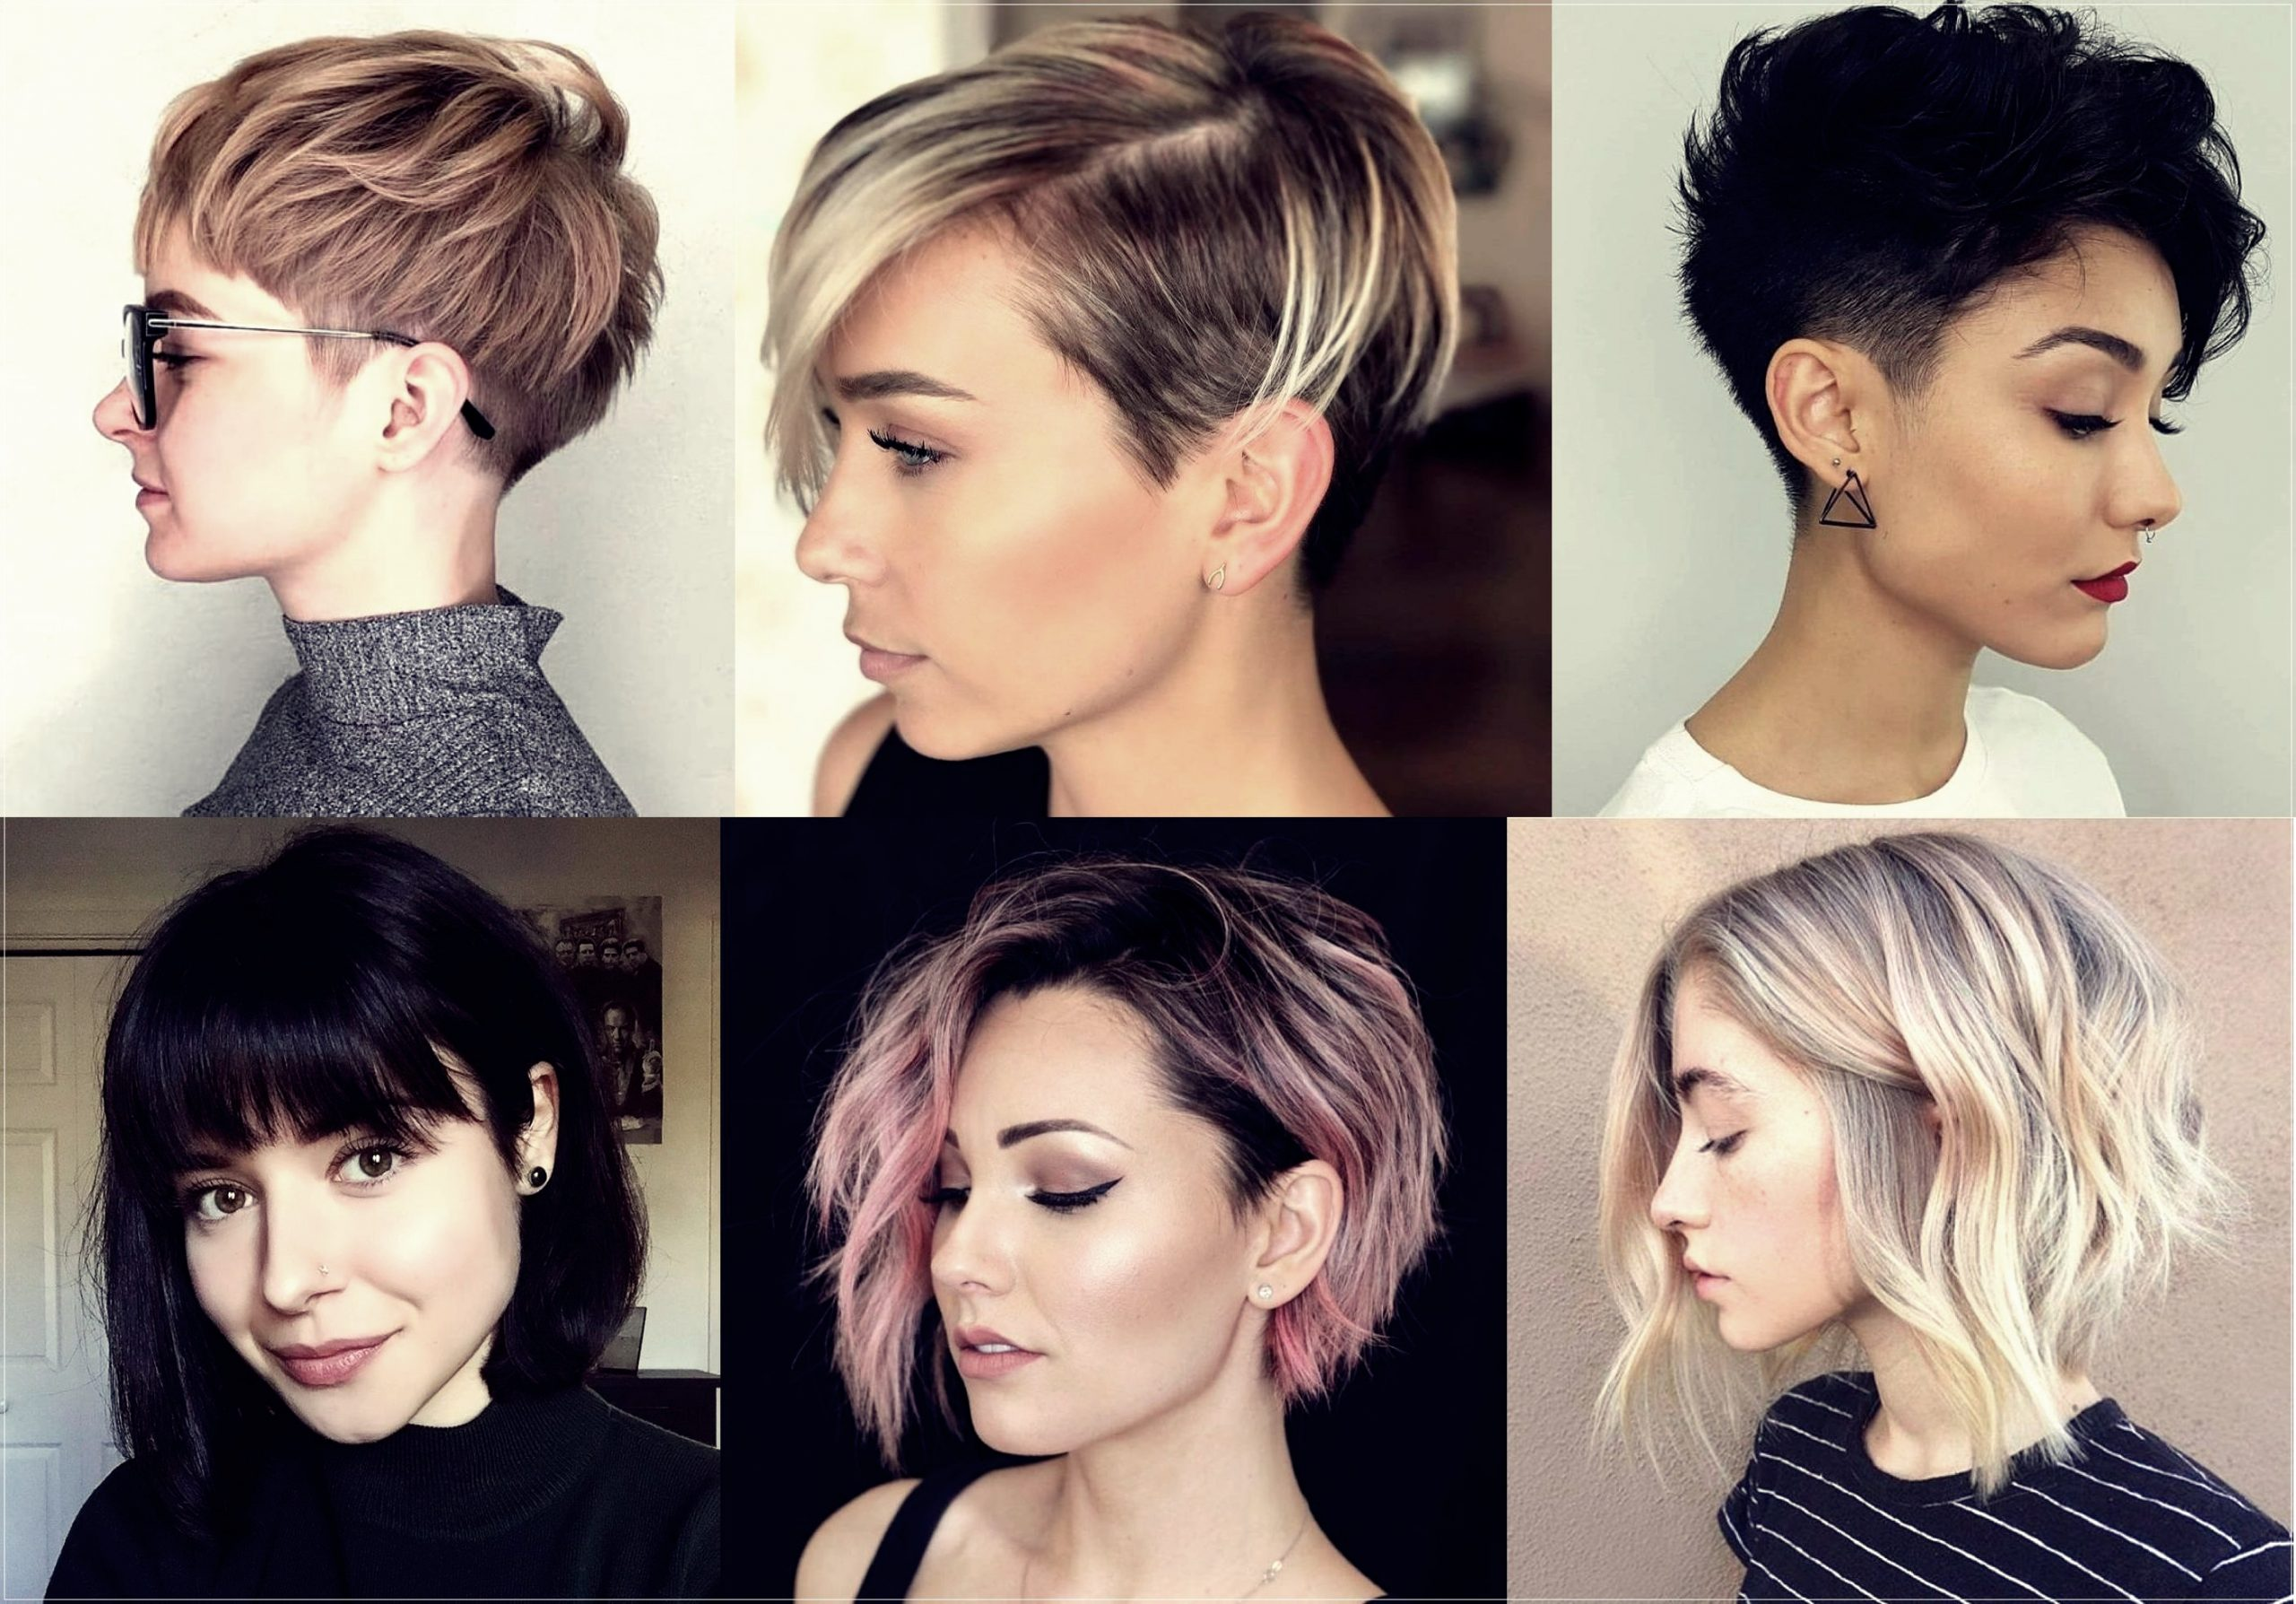 Short haircuts 11: 11 photos and trends